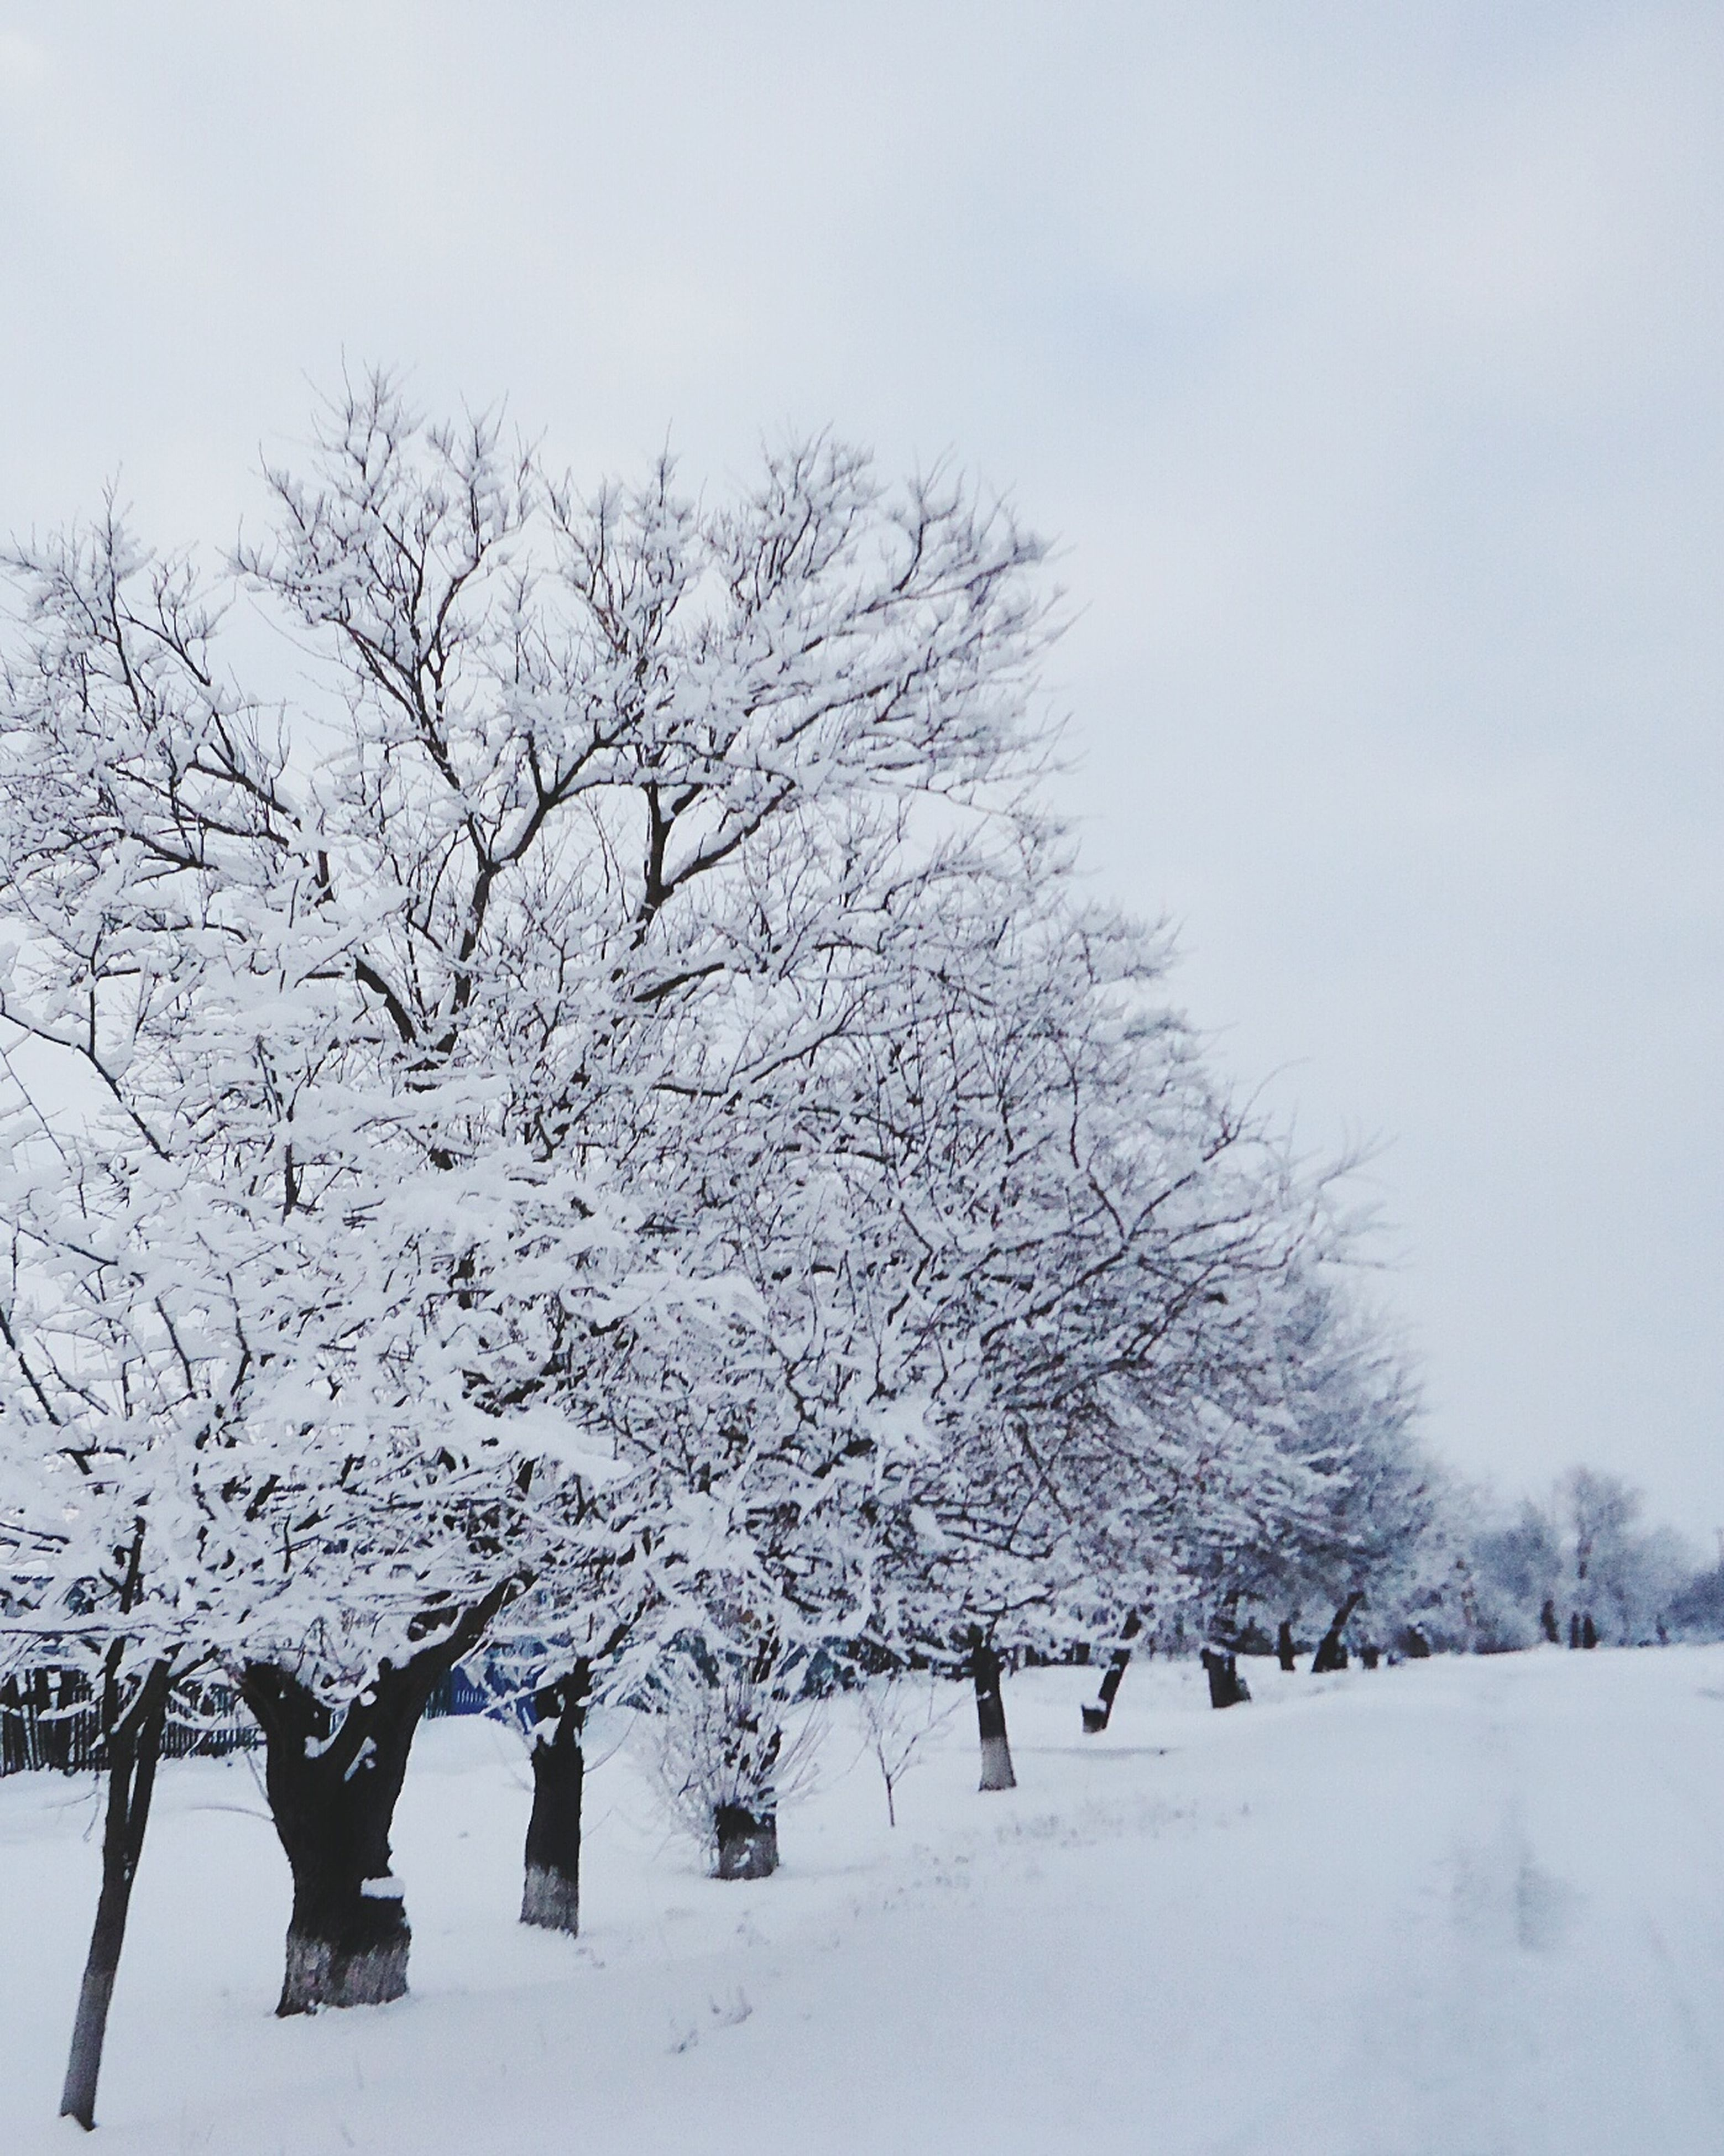 snow, winter, cold temperature, season, weather, bare tree, tree, covering, tranquility, nature, landscape, tranquil scene, frozen, white color, branch, beauty in nature, field, covered, scenics, snow covered